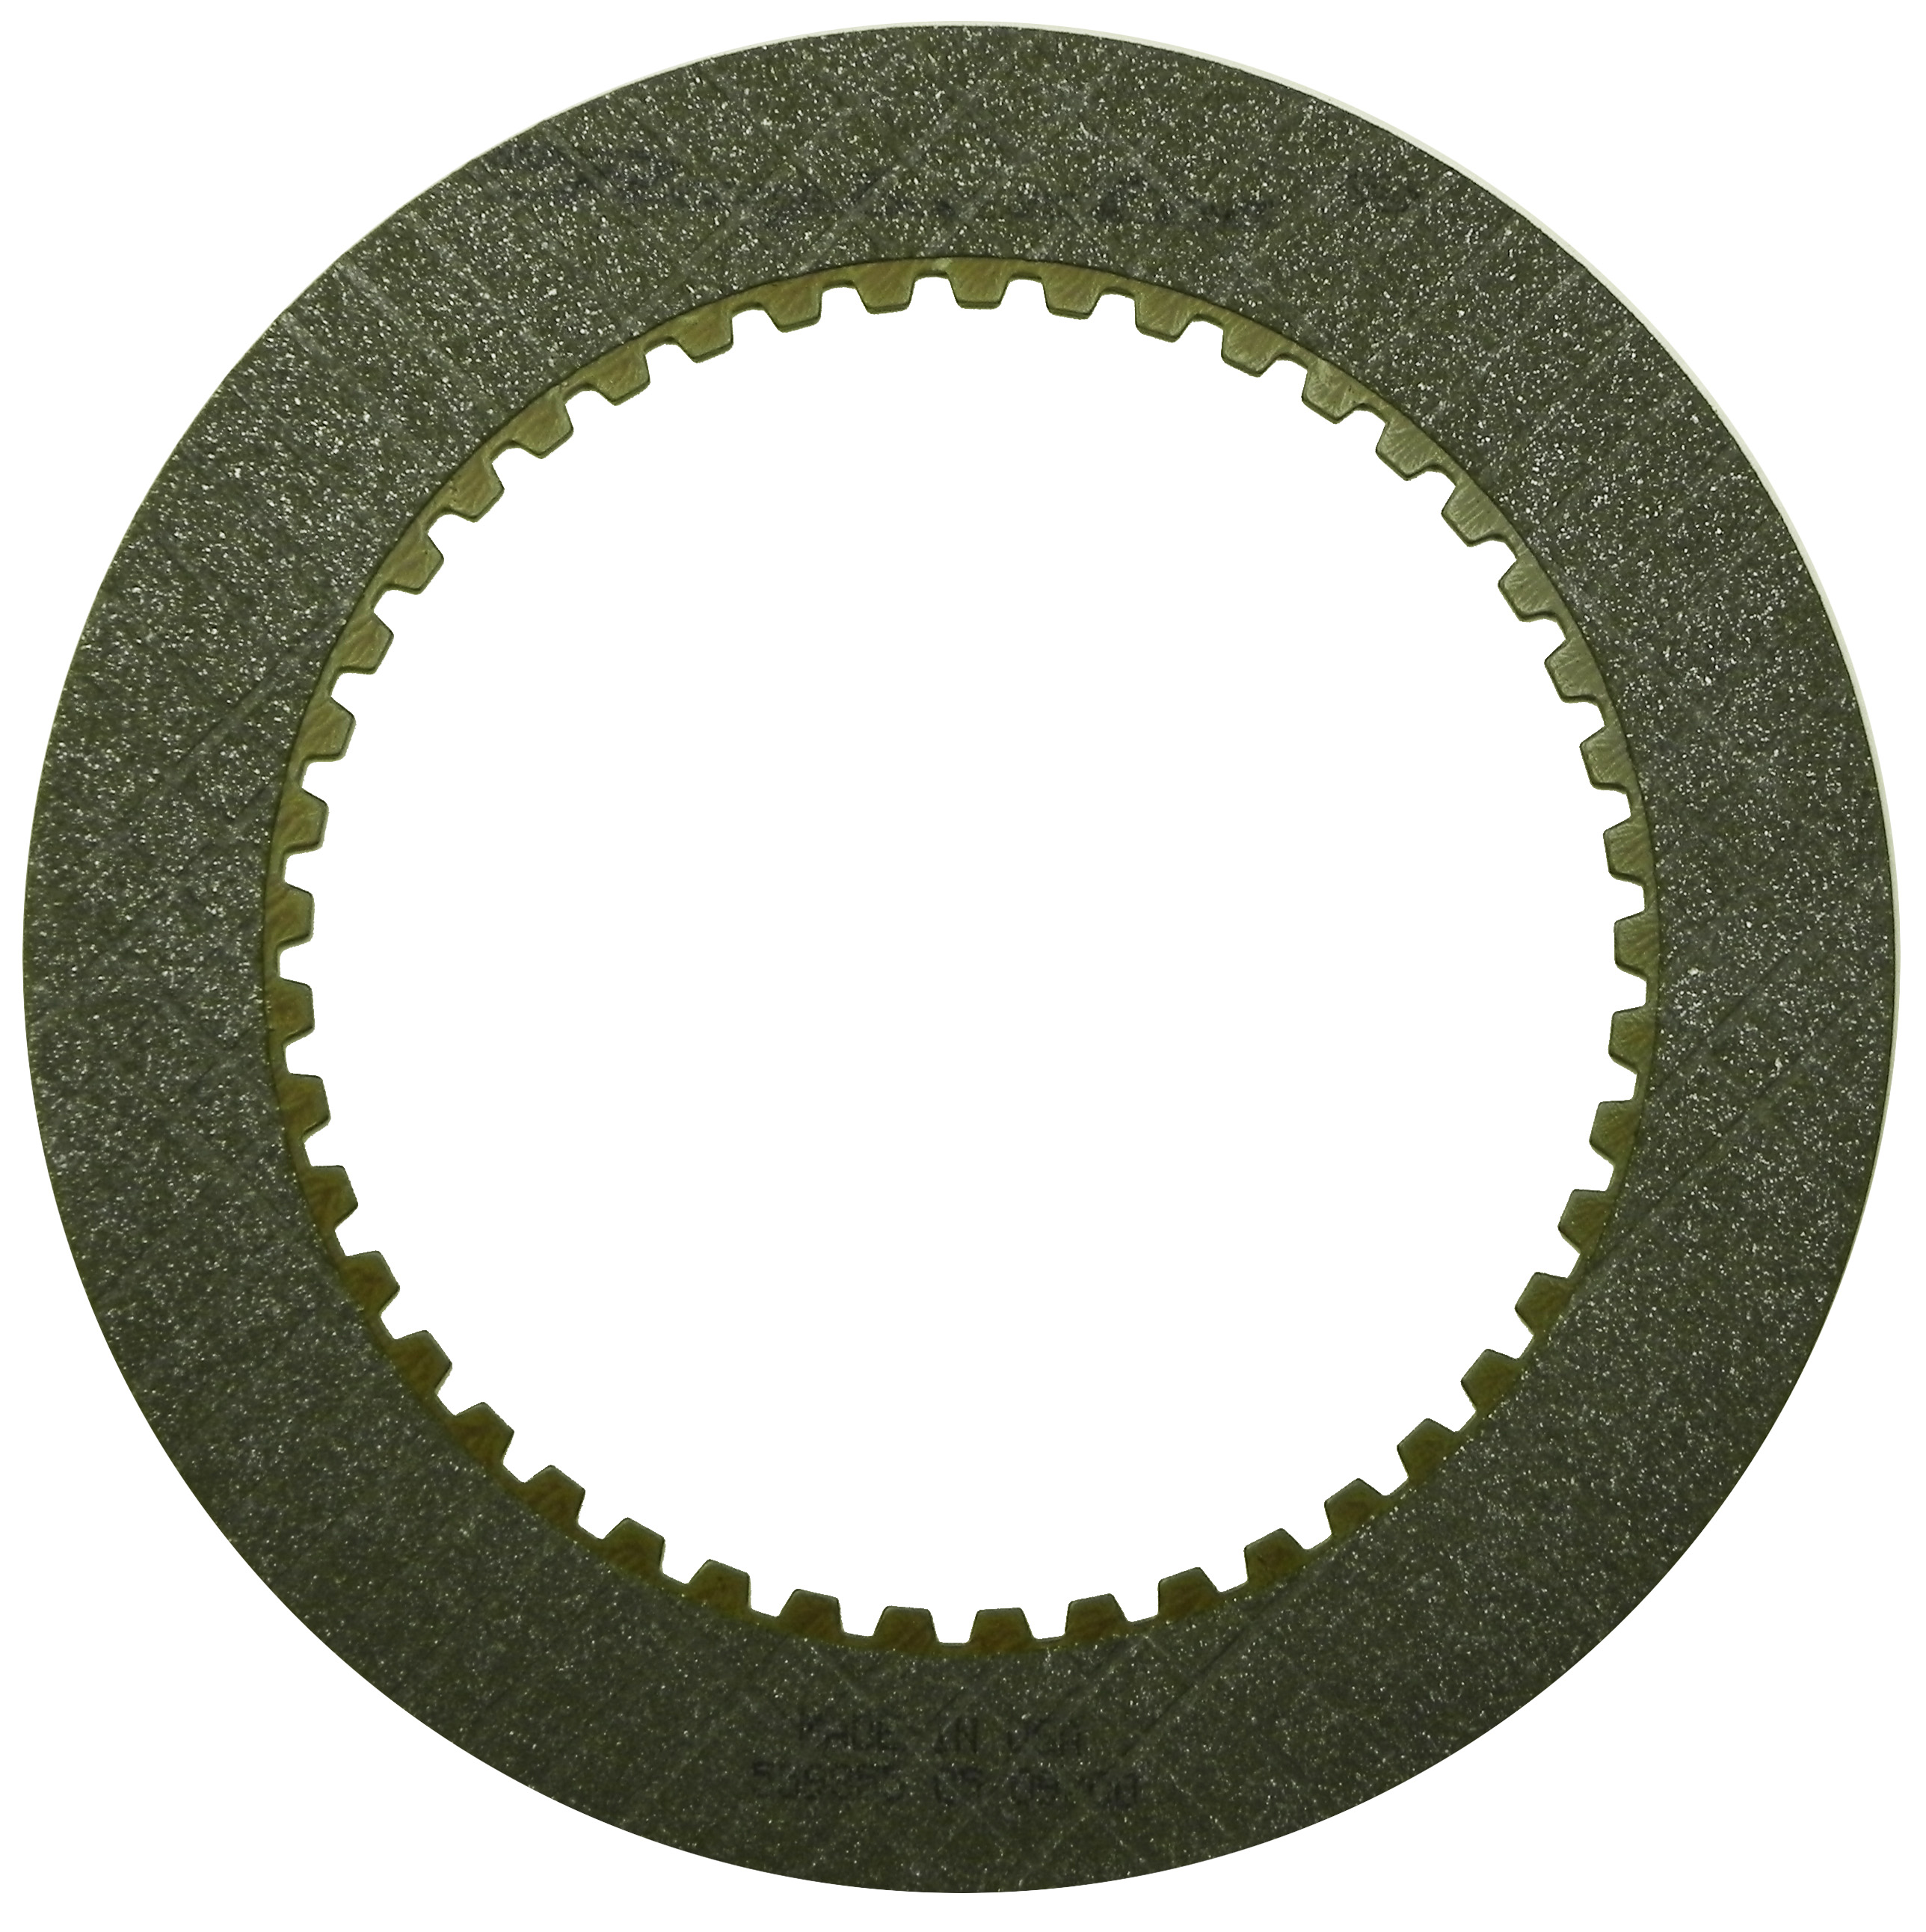 R559855 | 1958-1981 Friction Clutch Plate Graphitic Front Graphitic